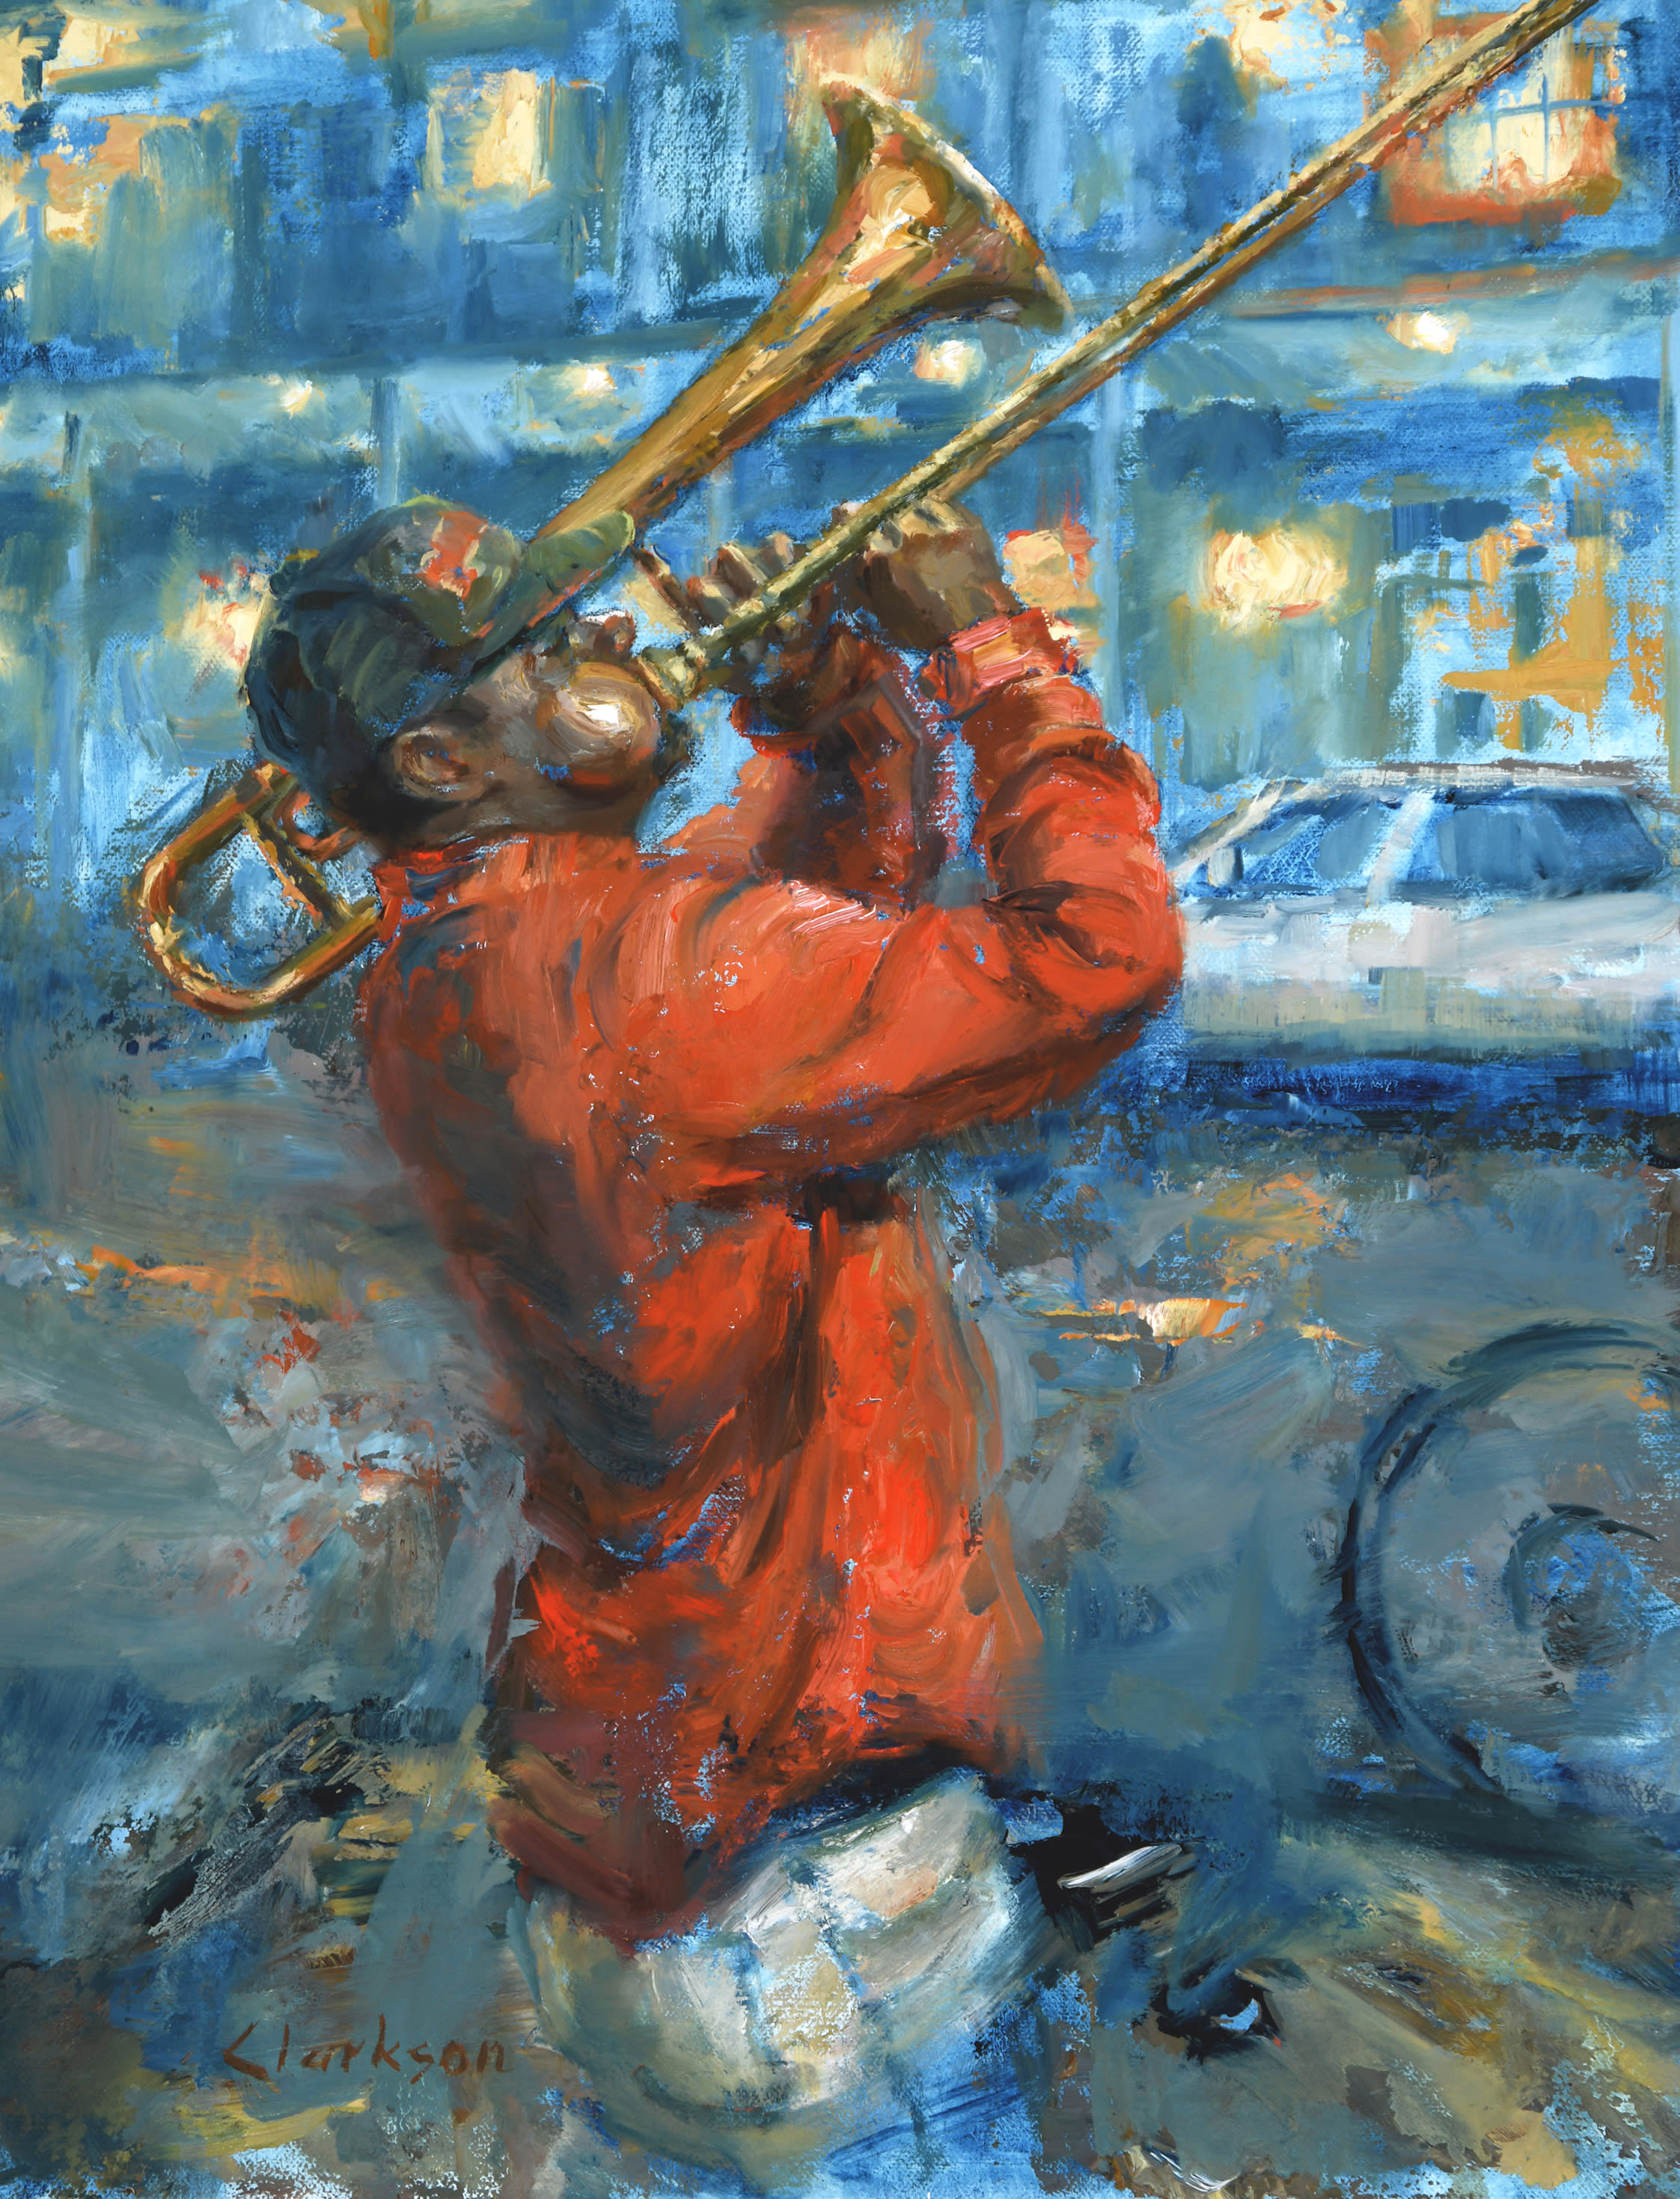 Trombone on frenchmen street 300 ppi 17 x 13 150 ppi rsuoms